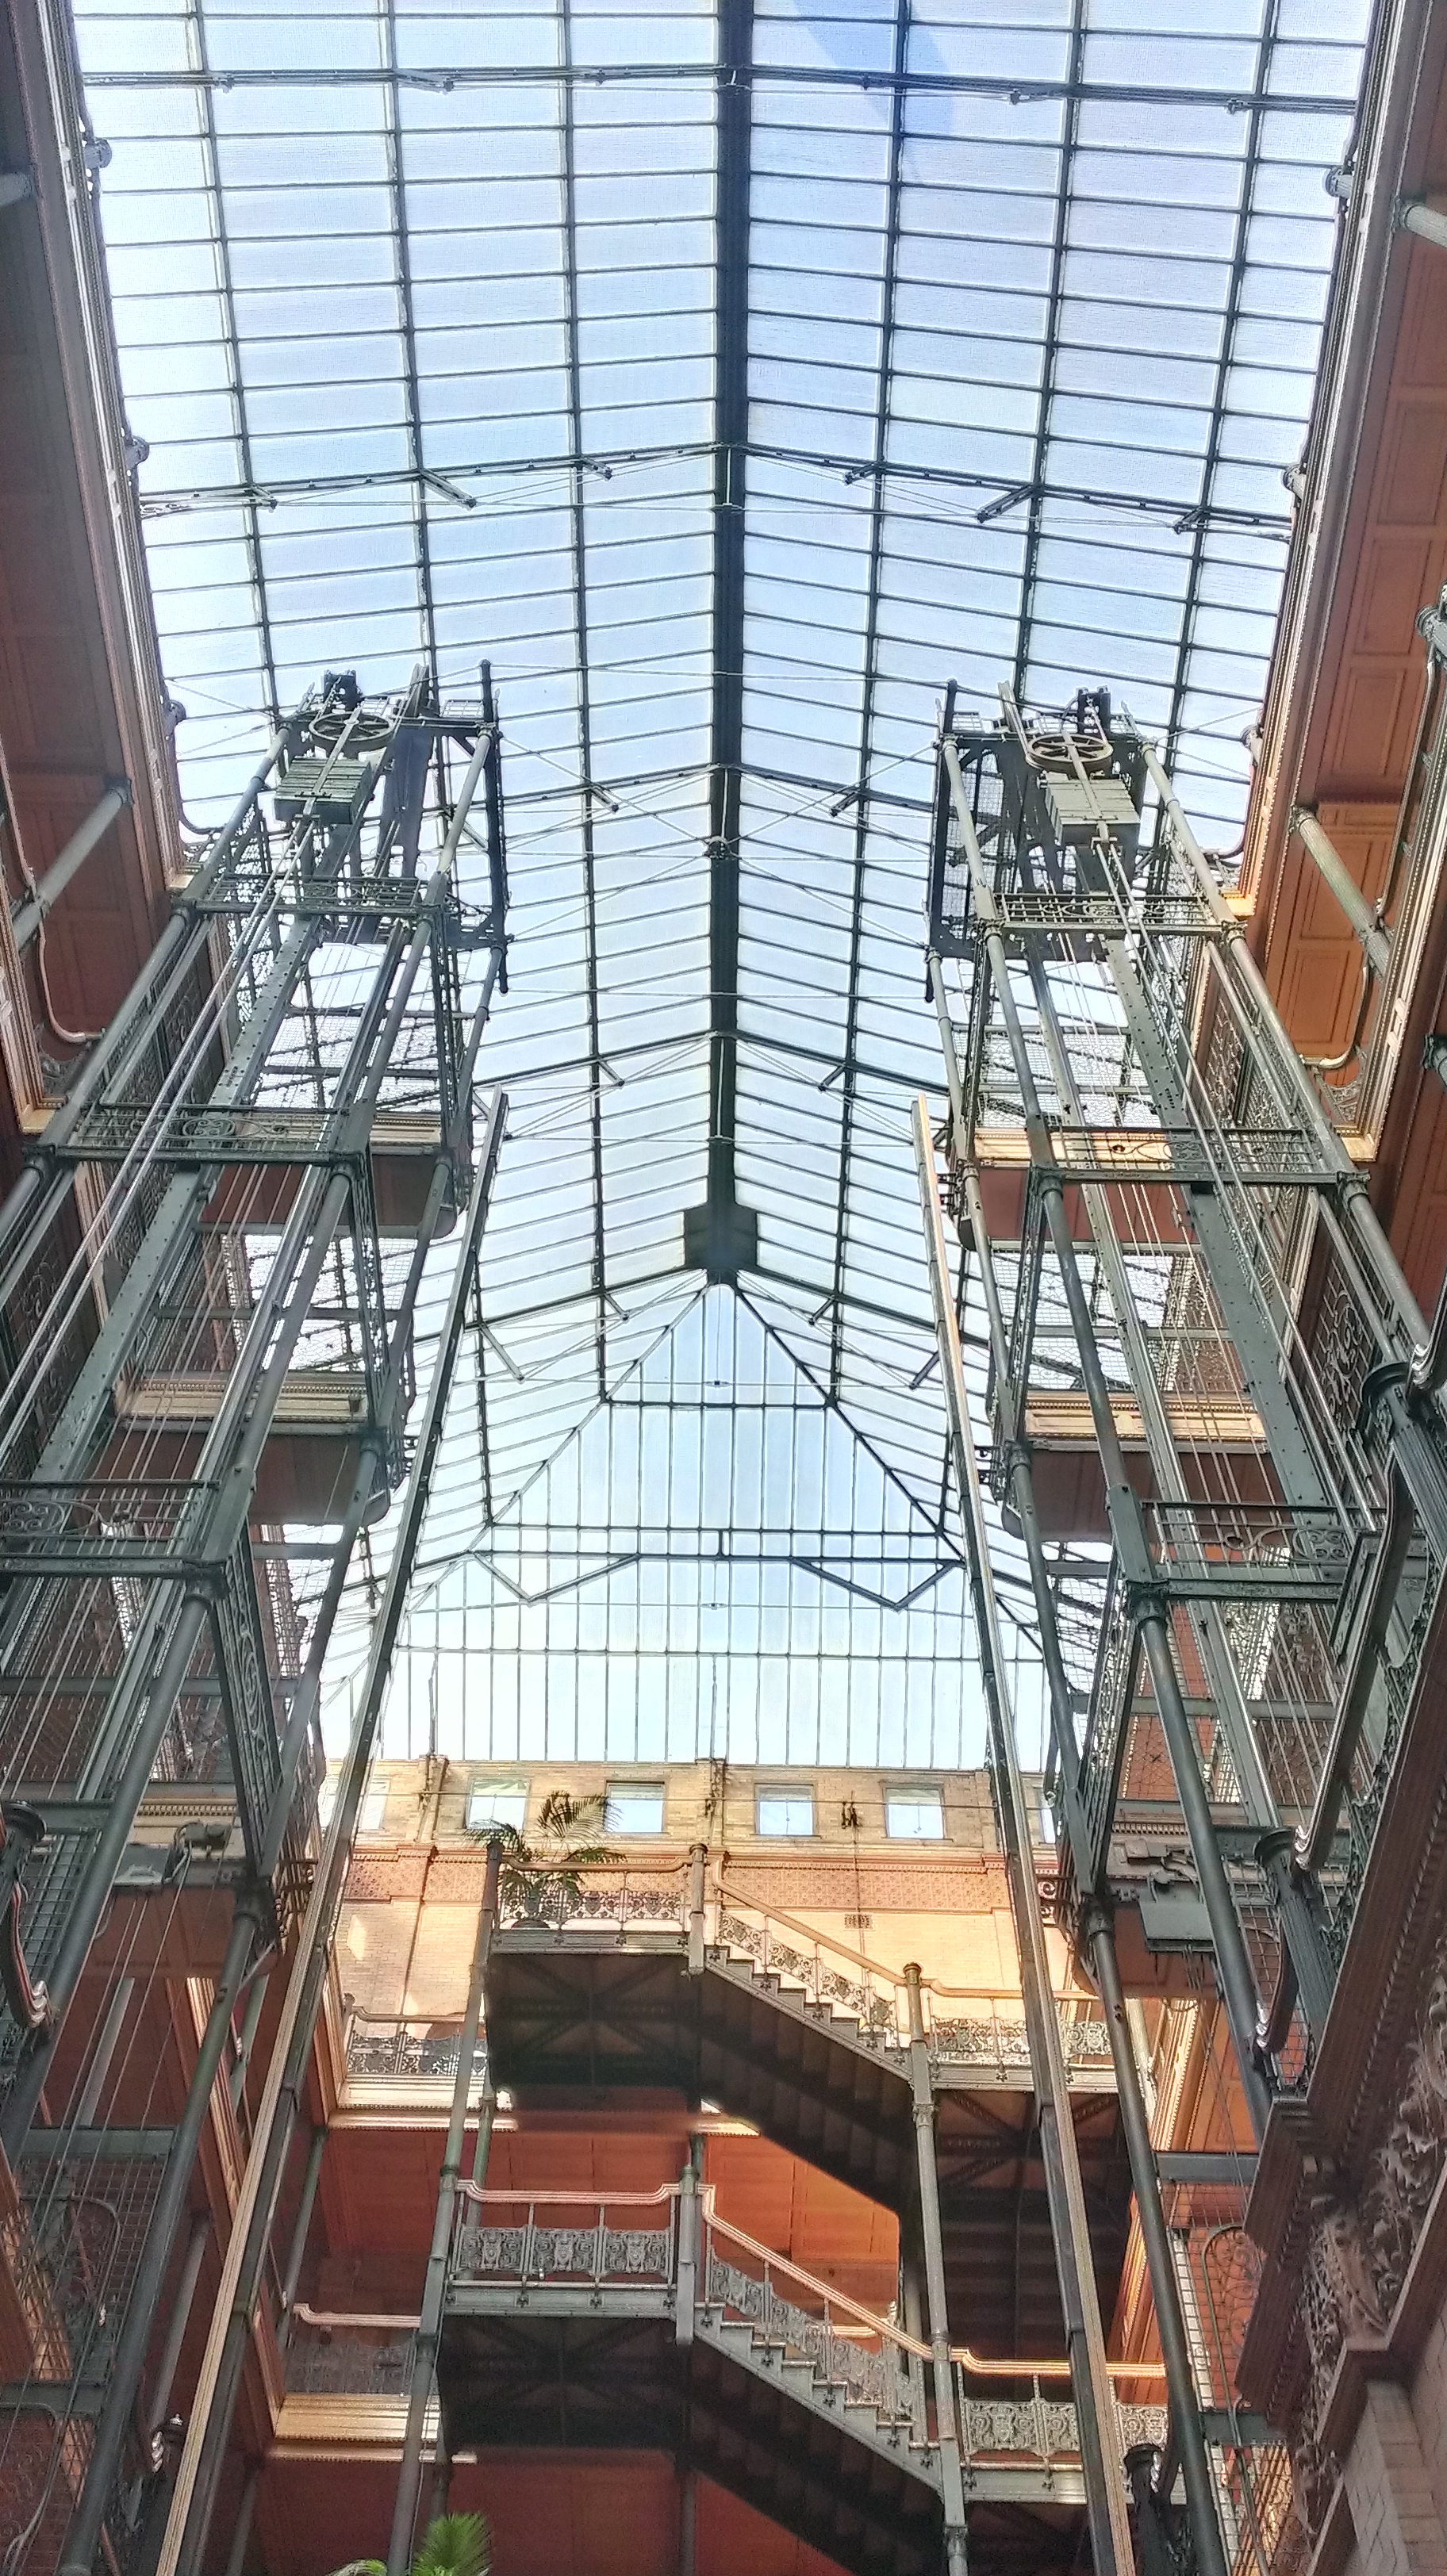 File:Bradbury building lobby and ceiling jpg - Wikimedia Commons